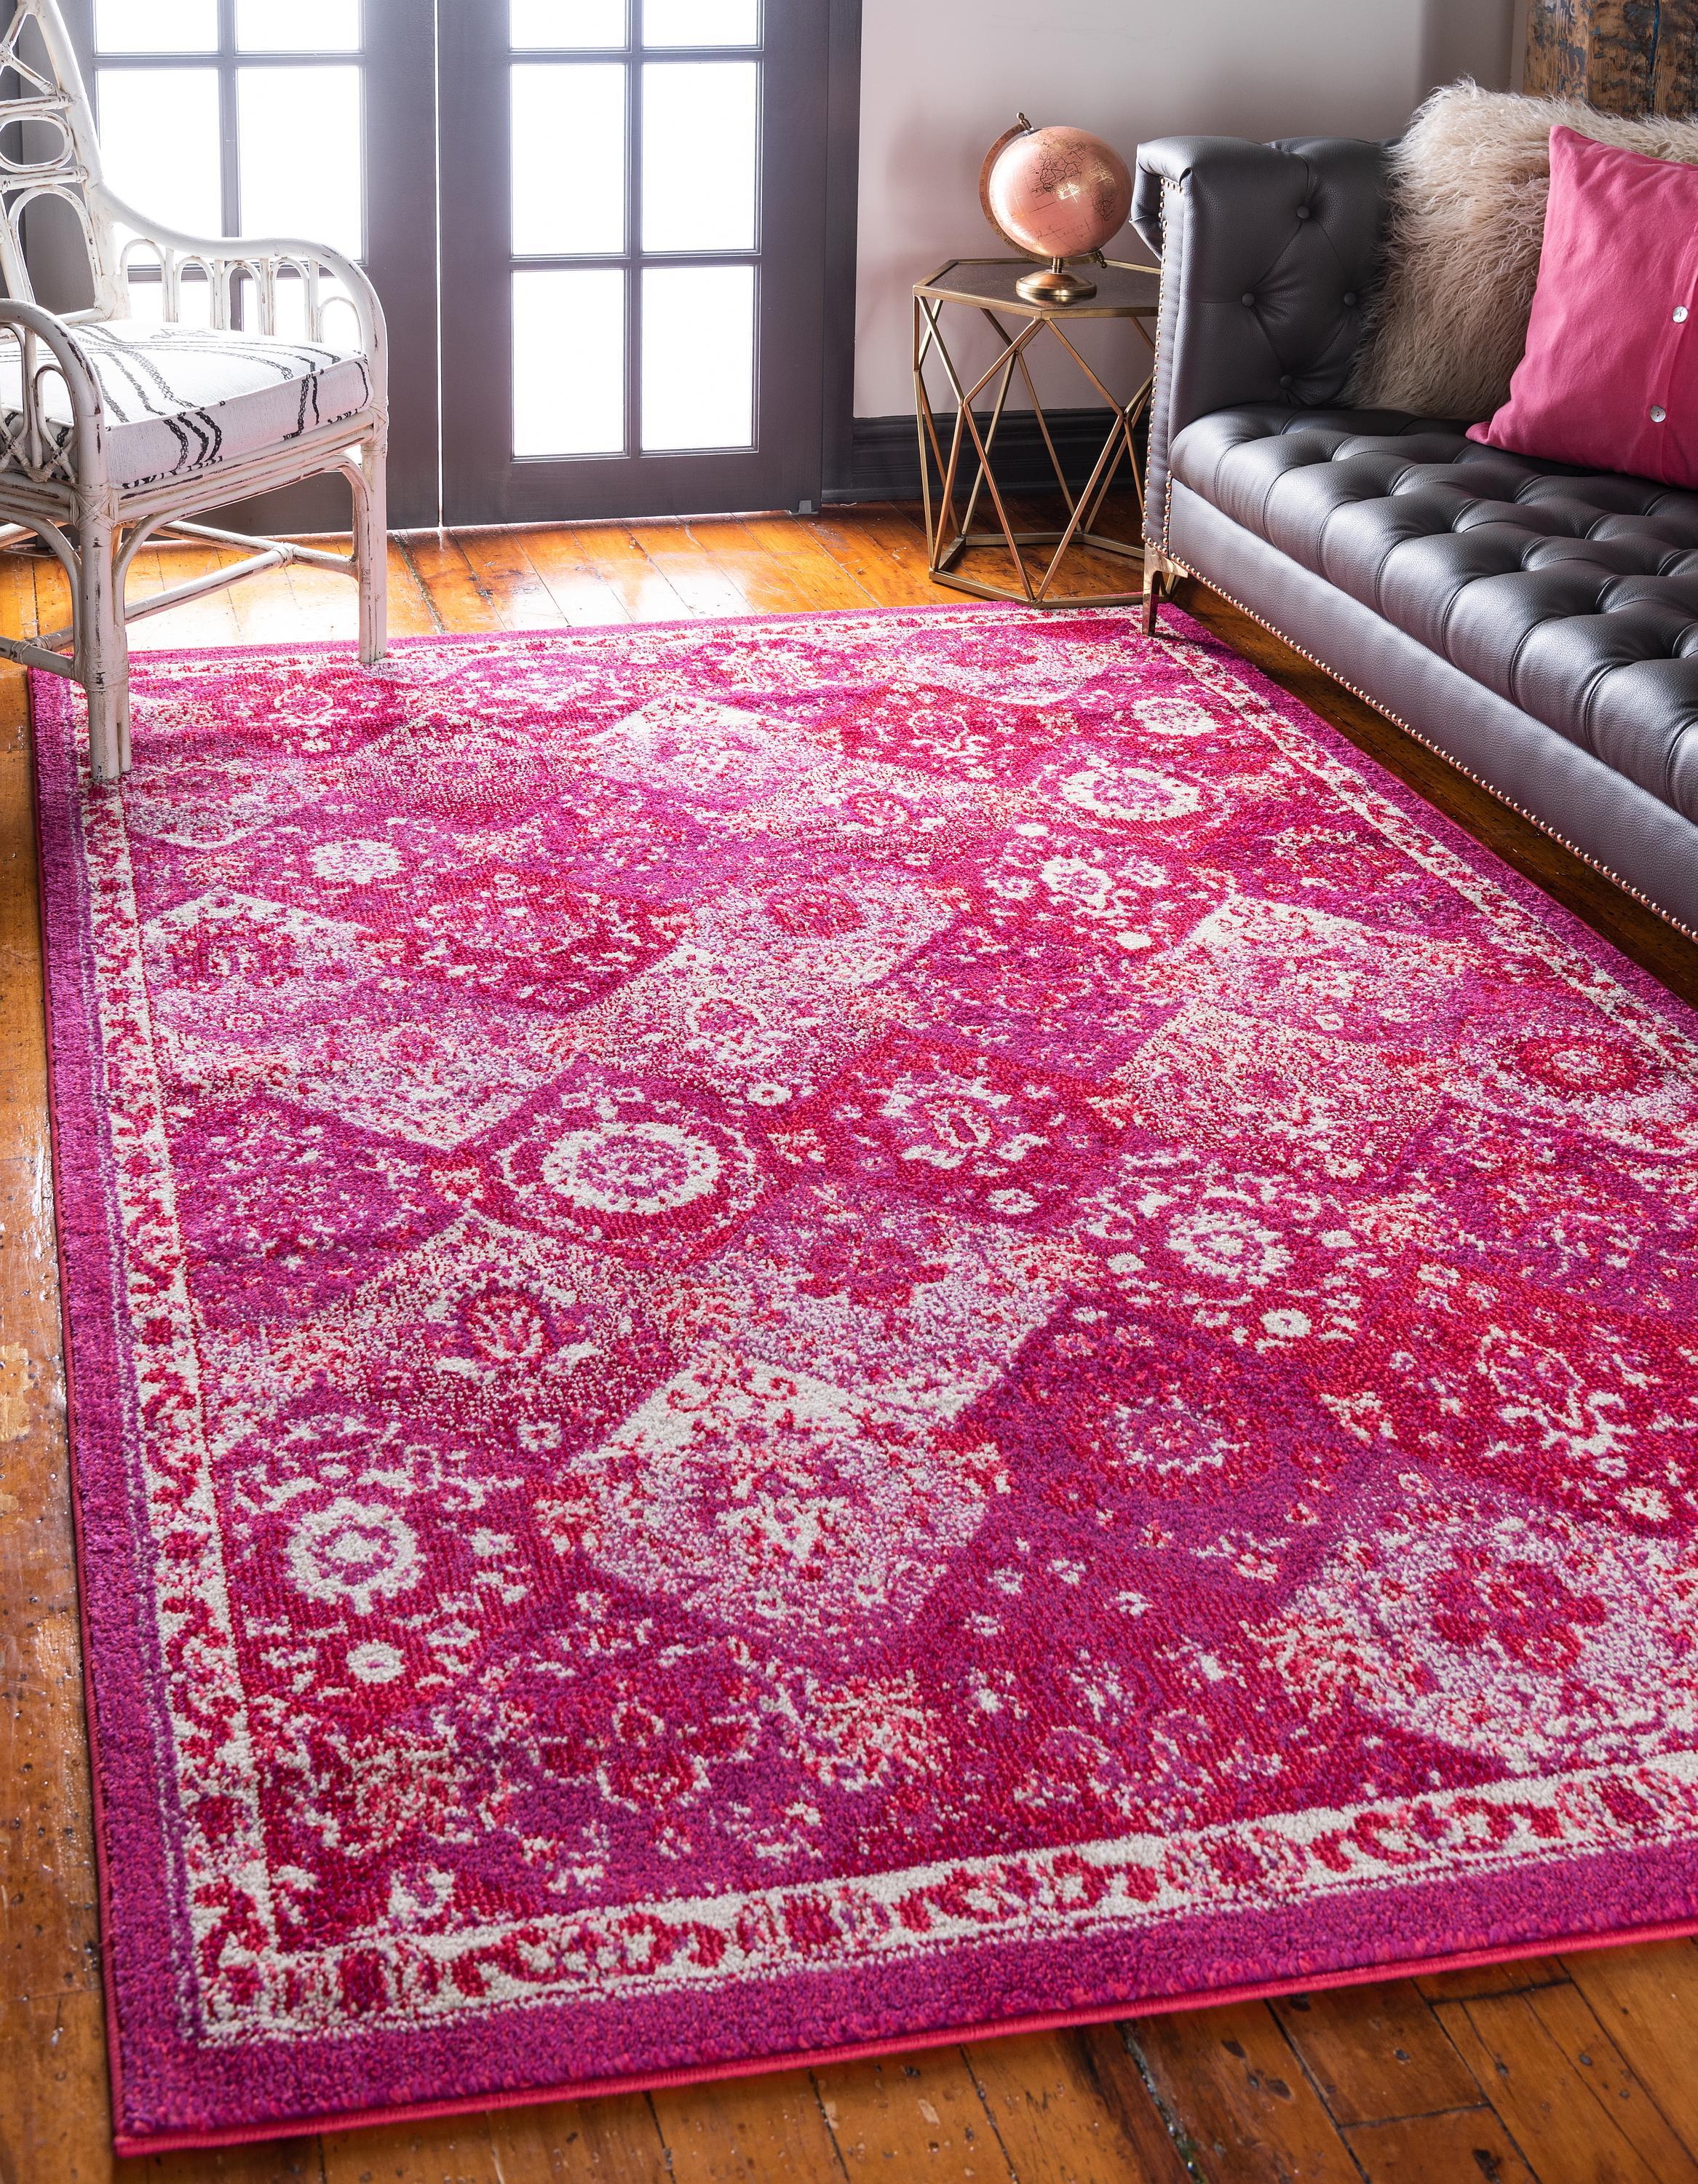 Magenta 5 3 X 7 7 Carrington Rug Irugs Uk